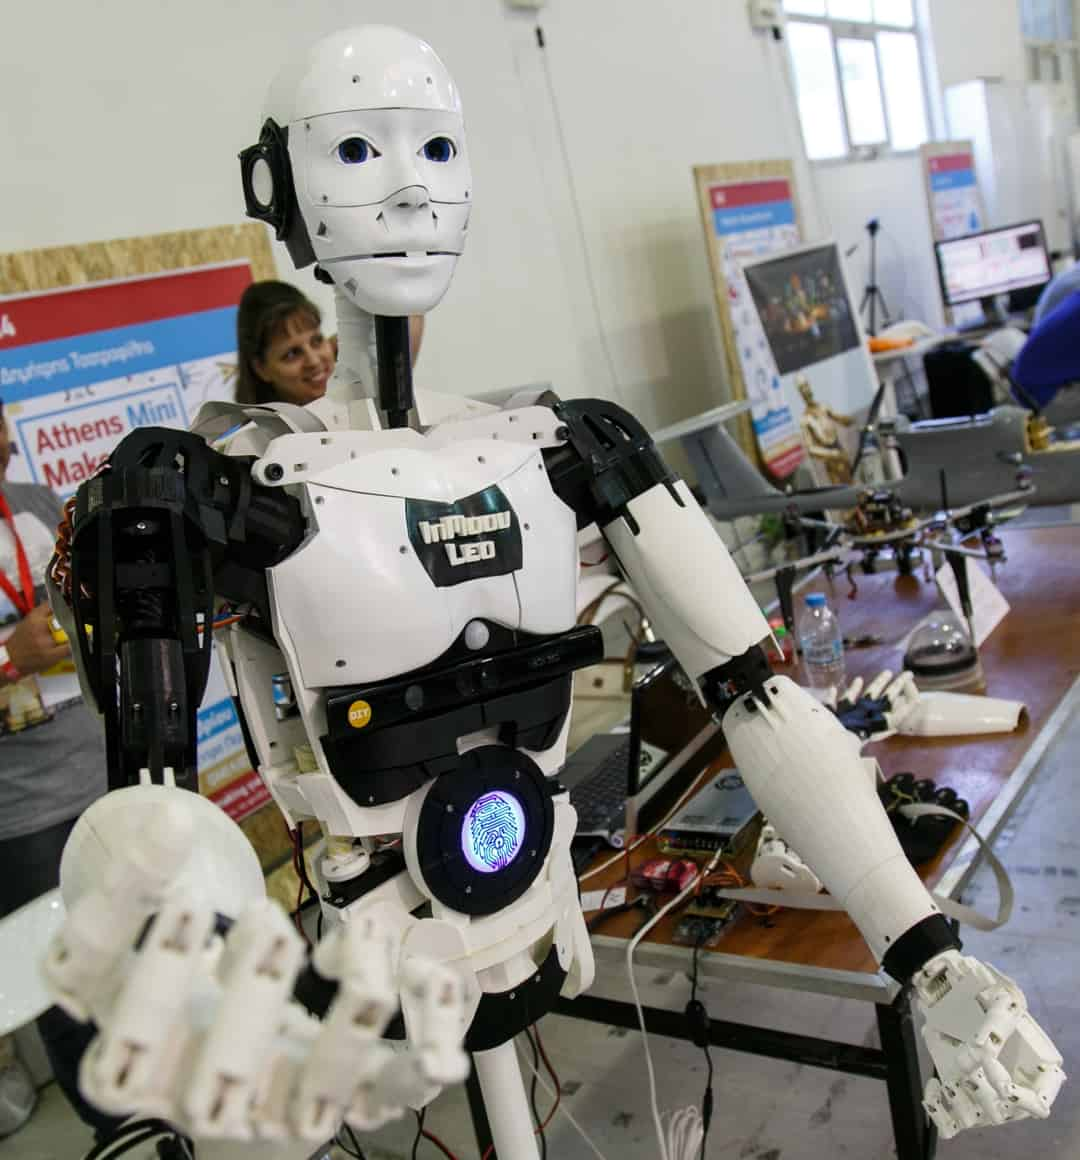 Athens Mini Maker Faire 2017 - Έλα να δεις, να μάθεις, να φτιάξεις! 6